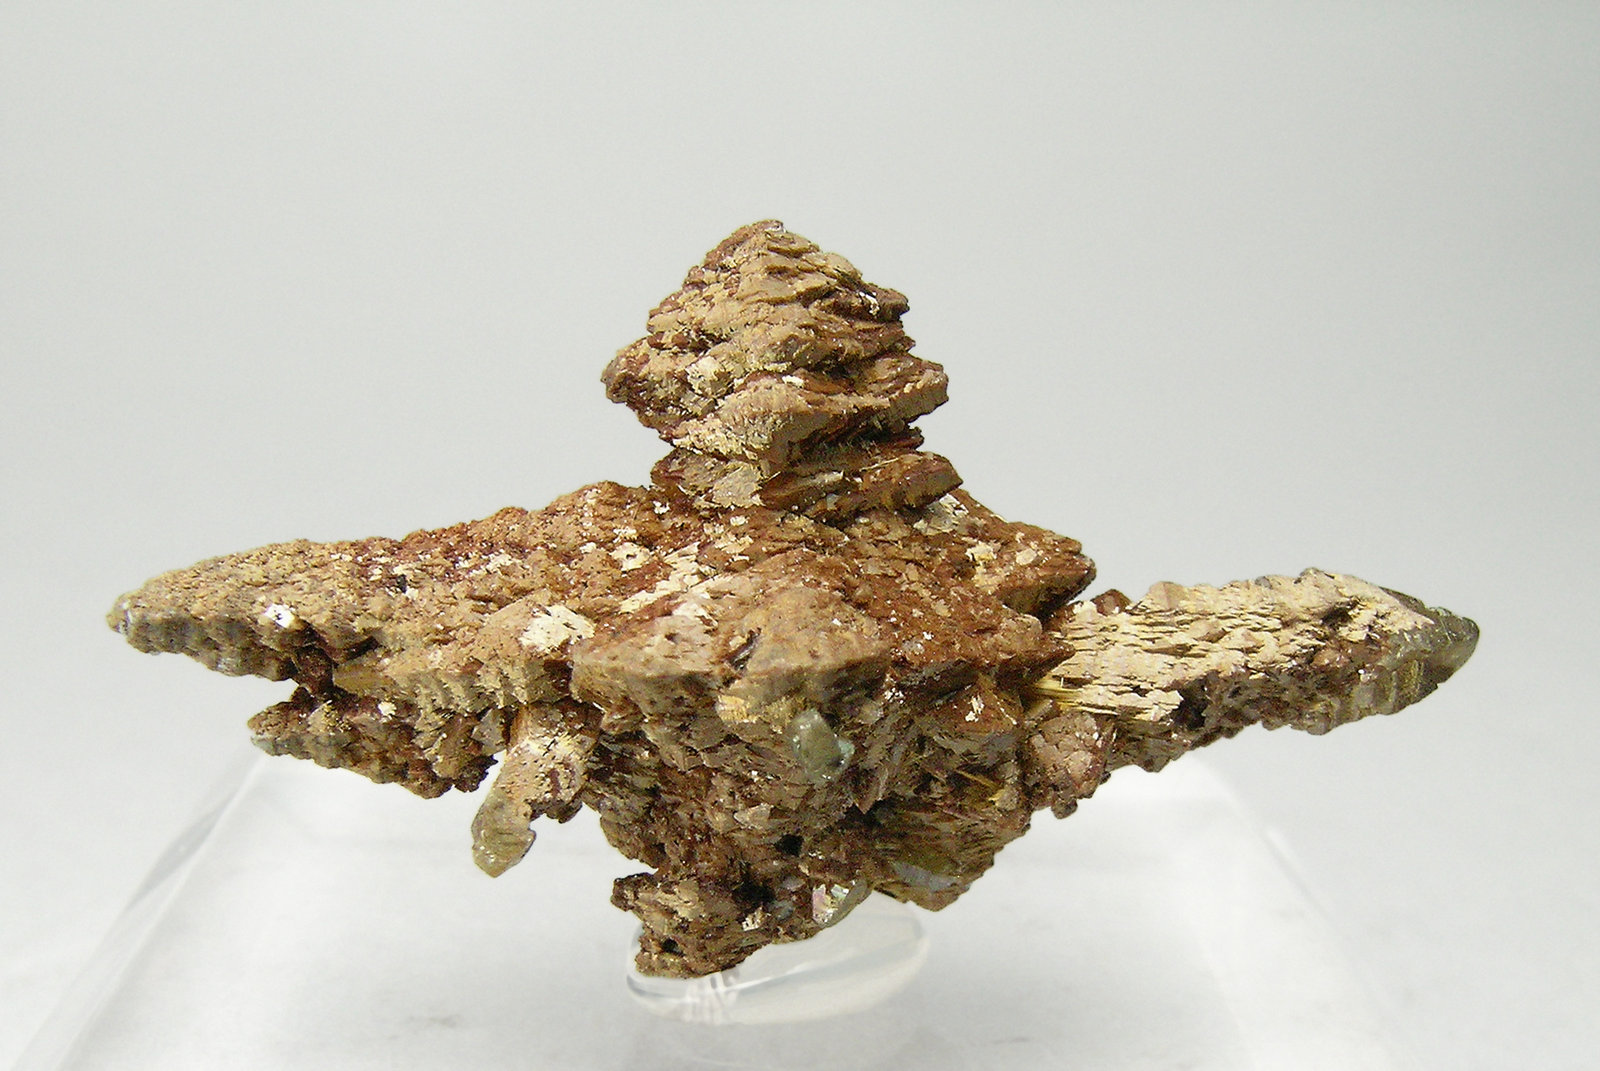 specimens/s_imagesQ6/Anatase-AT47Q6f.jpg